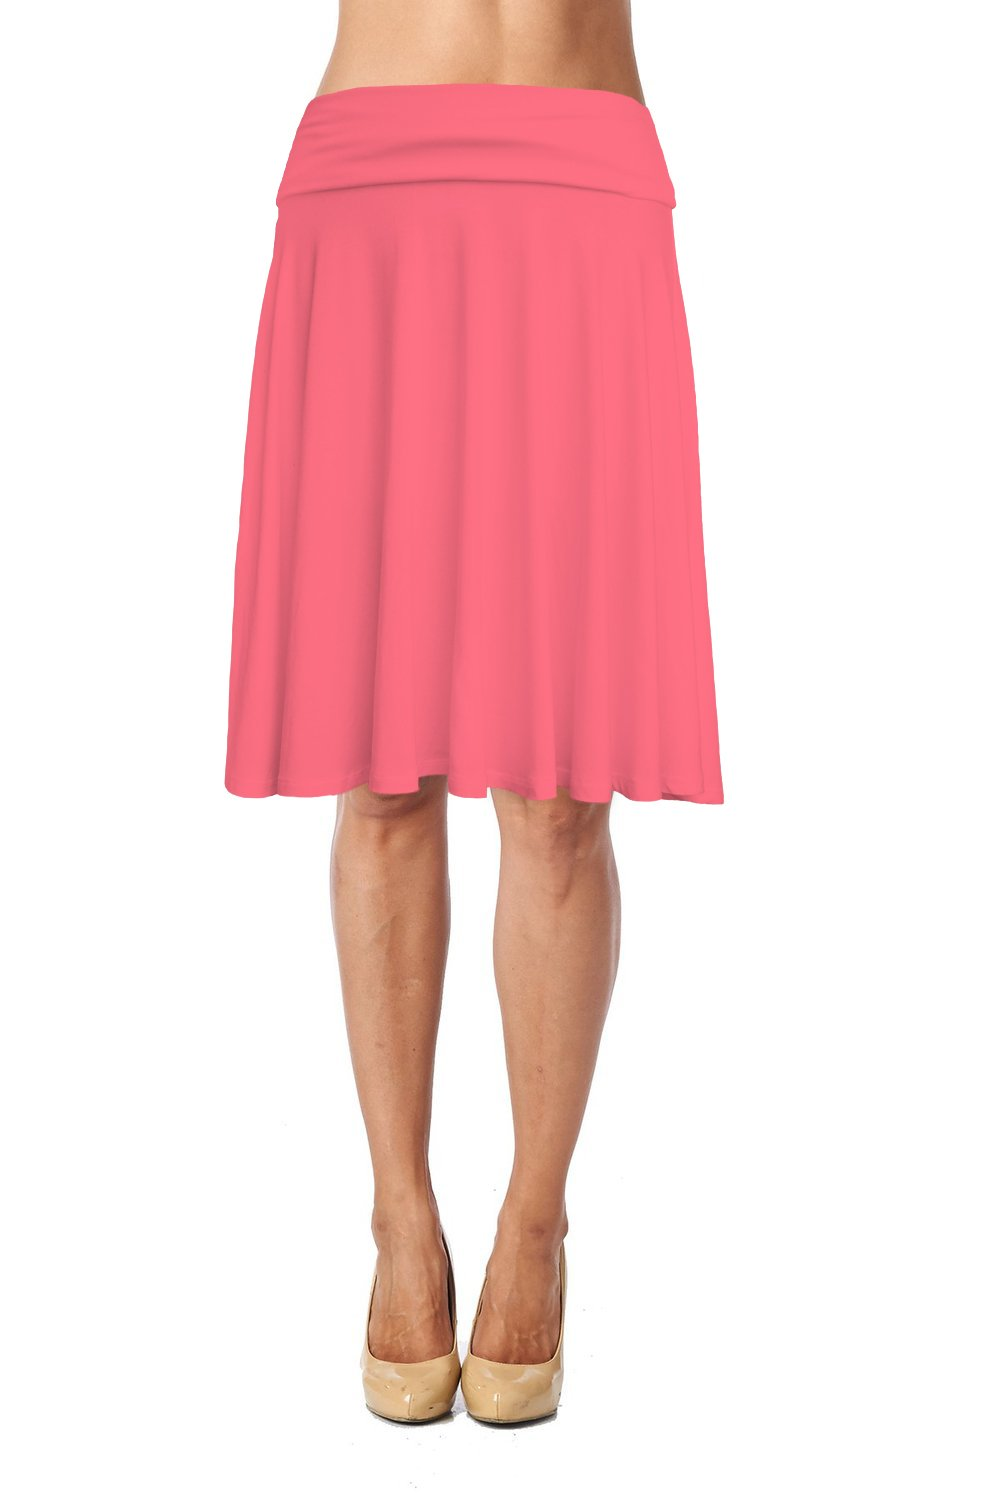 Jubilee Couture Womens Basic Soft Stretch Mid Midi Knee Length Flare Flowy Skirt Made in USA-Coral,1X